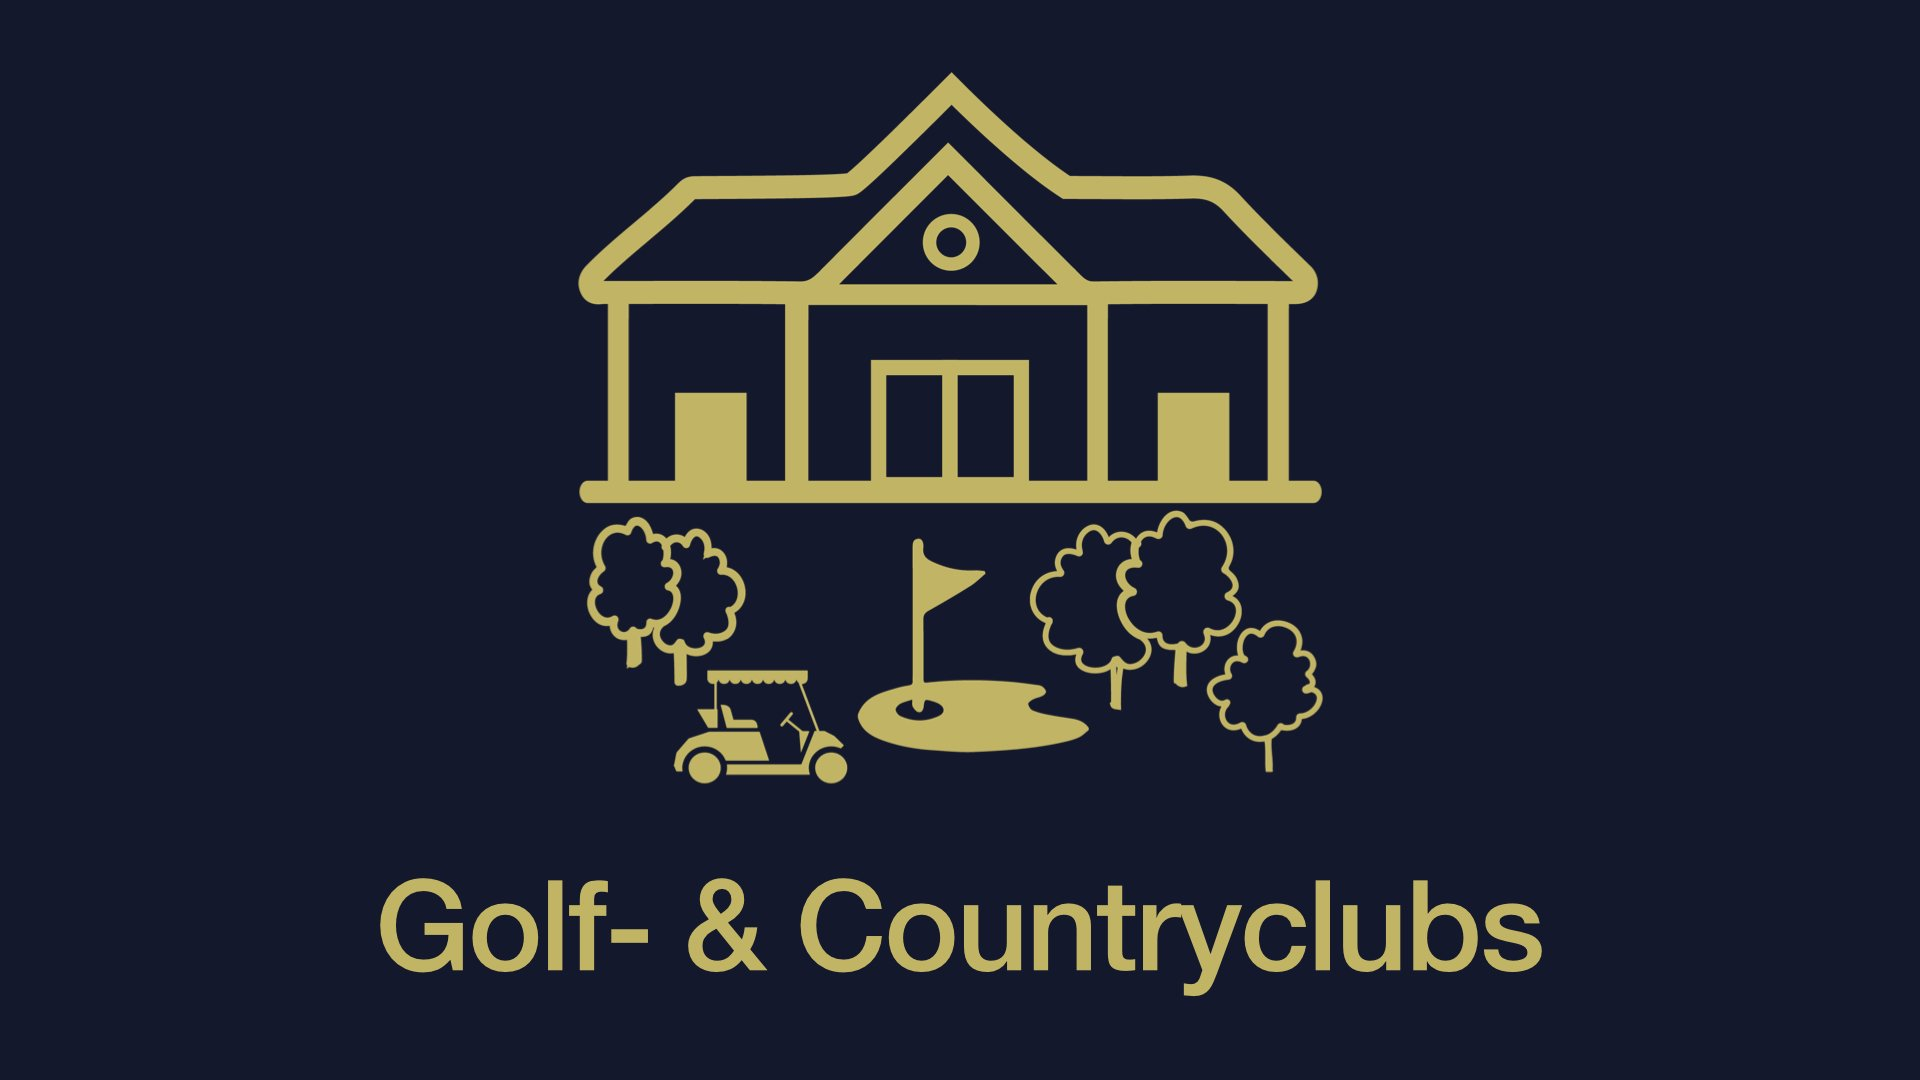 Golf- & Countryclubs